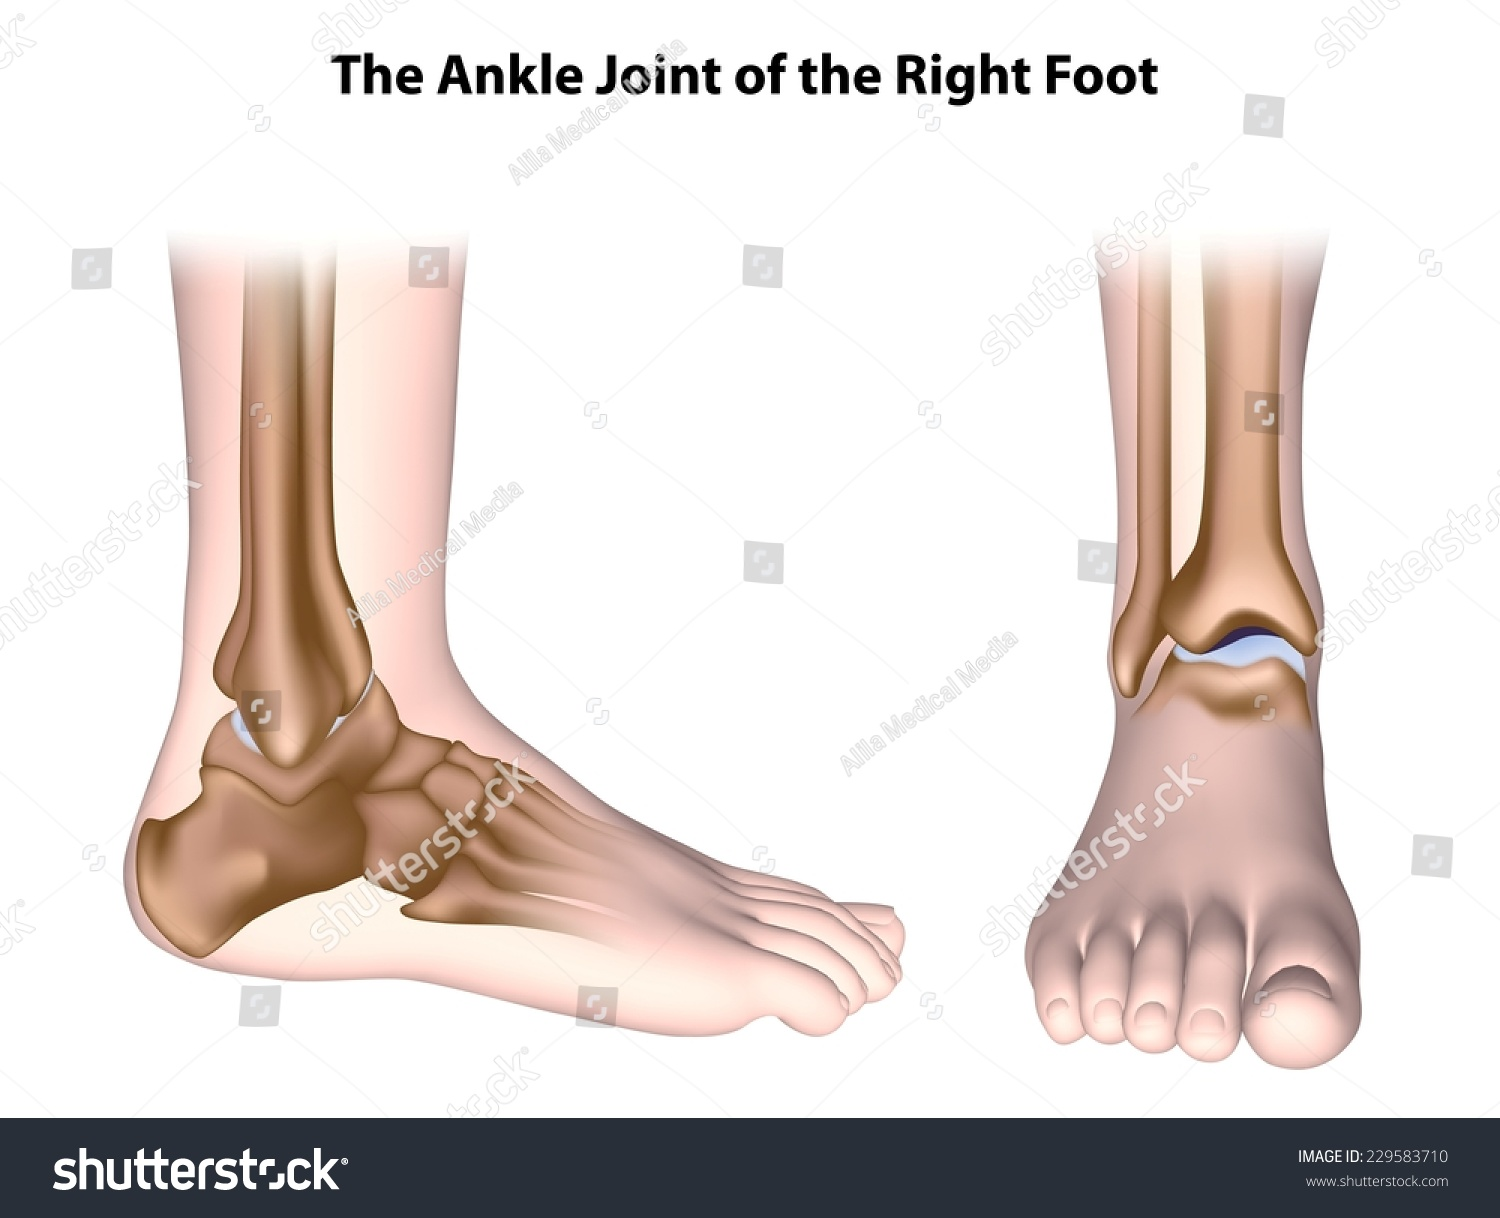 Ankle Joint Anatomy Unlabeled Stock Illustration 229583710 ...